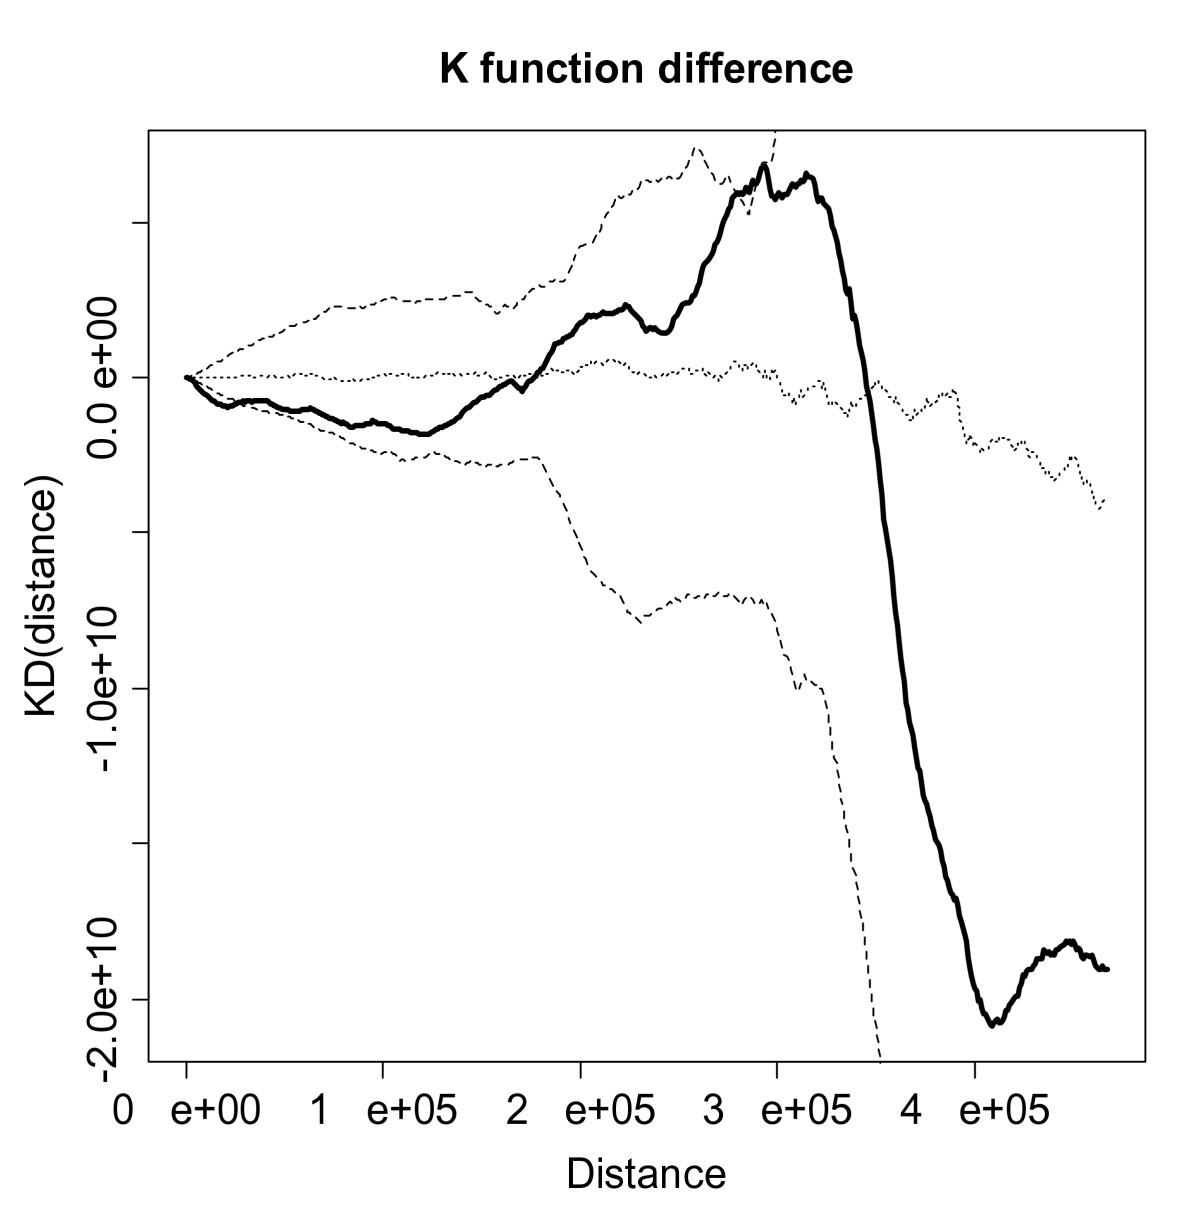 http://static-content.springer.com/image/art%3A10.1186%2F1476-072X-6-13/MediaObjects/12942_2007_Article_151_Fig3_HTML.jpg